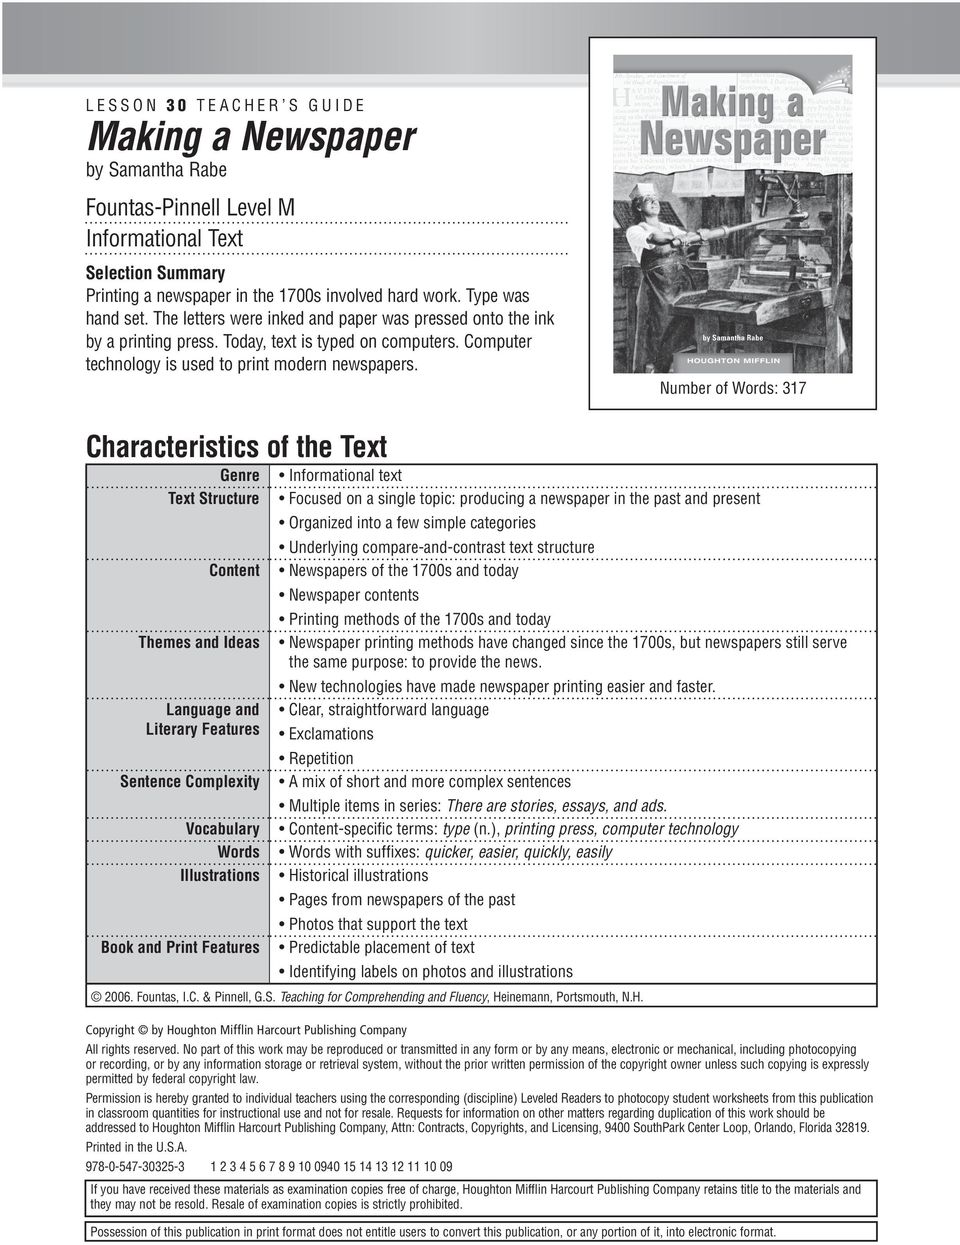 Number of Words: 317 Characteristics of the Text Genre Informational text Text Structure Focused on a single topic: producing a newspaper in the past and present Organized into a few simple